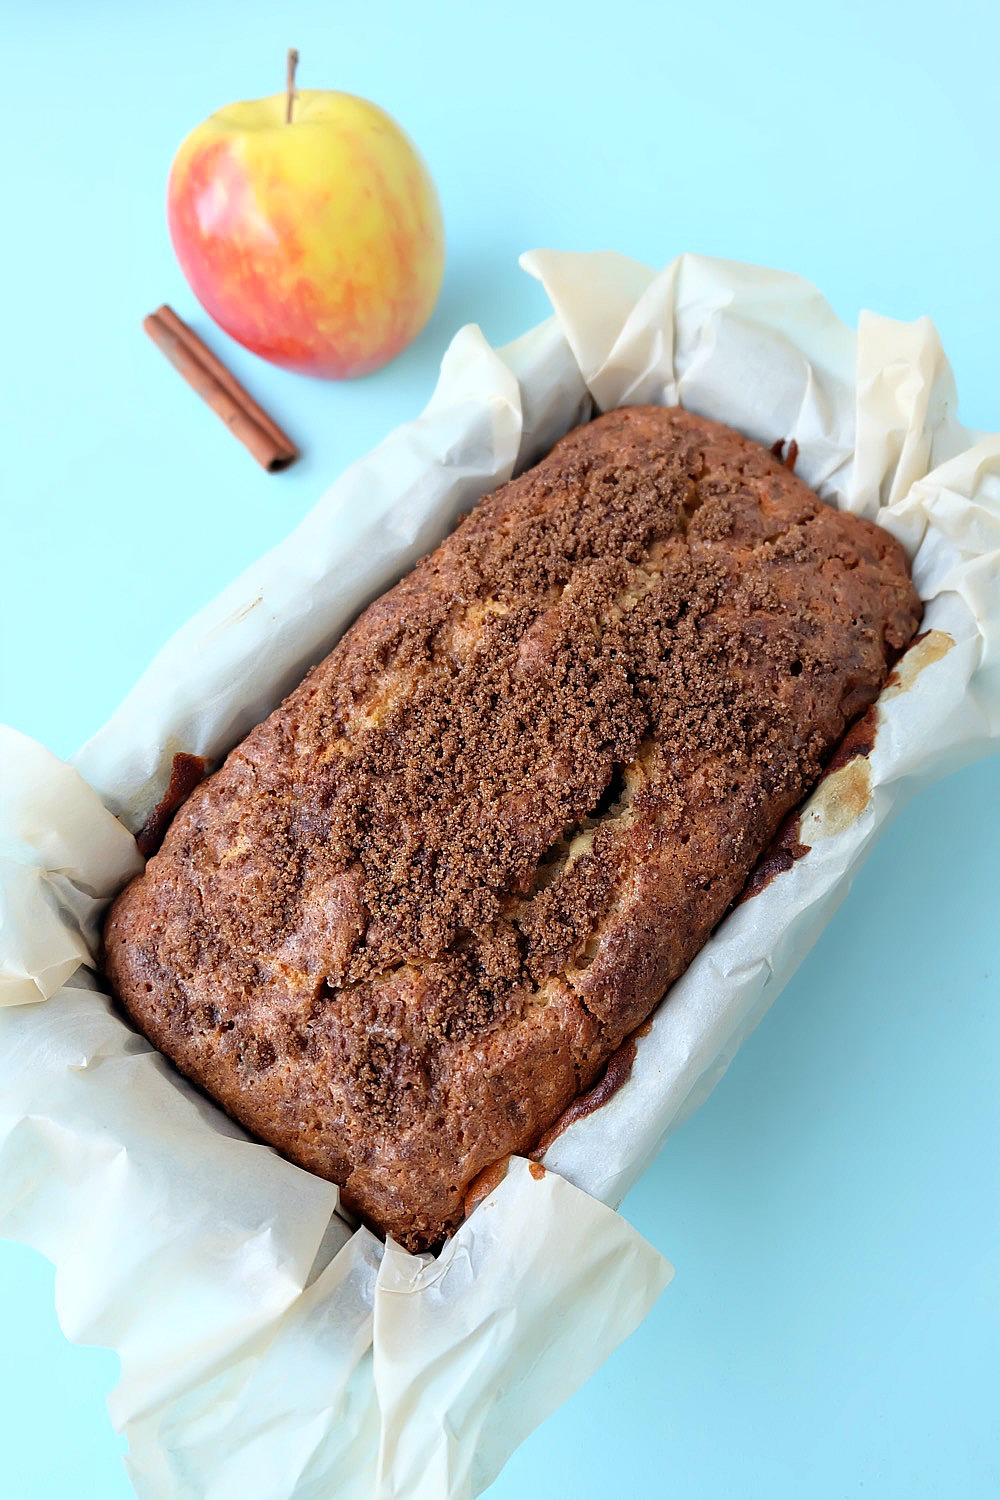 This cinnamon apple bread recipe is a family favorite that is perfect for breakfast or a to serve for afternoon tea! Kid friendly, the apples melt right into the bread. Topped with a crunchy cinnamon and brown sugar topping. Easy to make with just 10 minutes of prep time, you're going to love baking this apple recipe! #Baking #Bread #Apples #Recipe